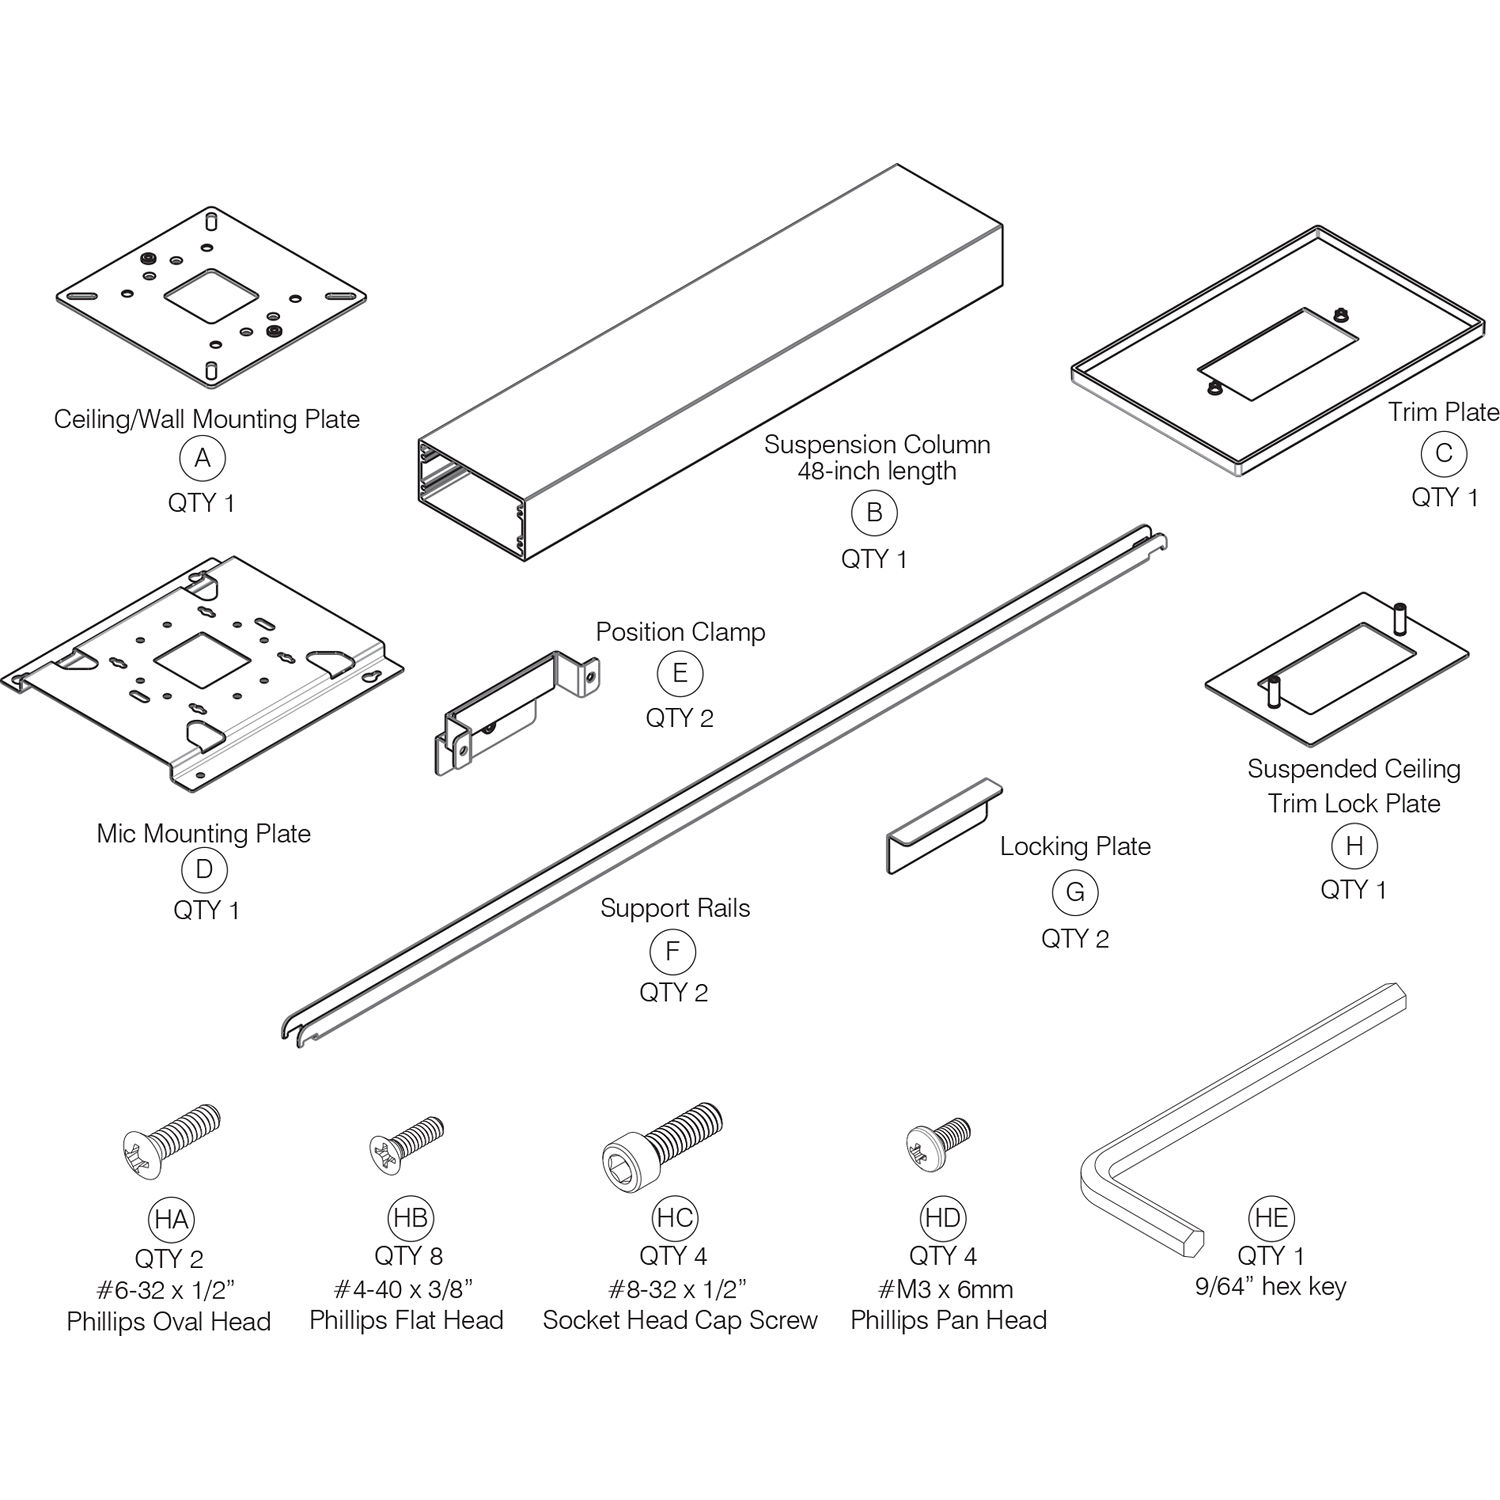 Clearone Ceiling Mount Kit With 48 Suspension